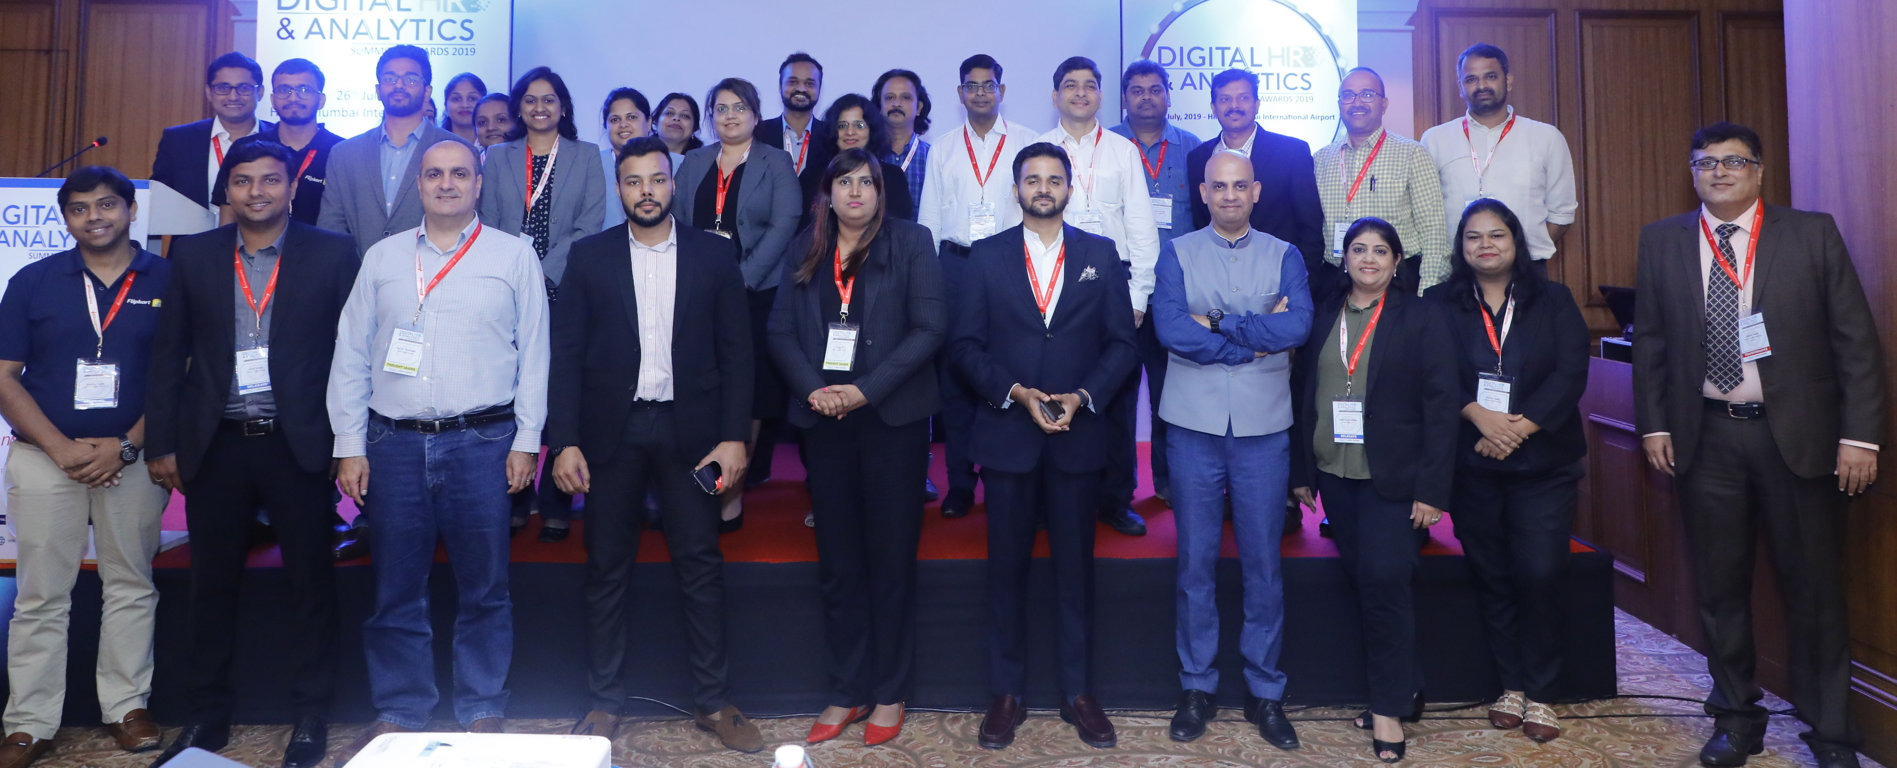 Digital HR & Analytics Summit & Awards 2019